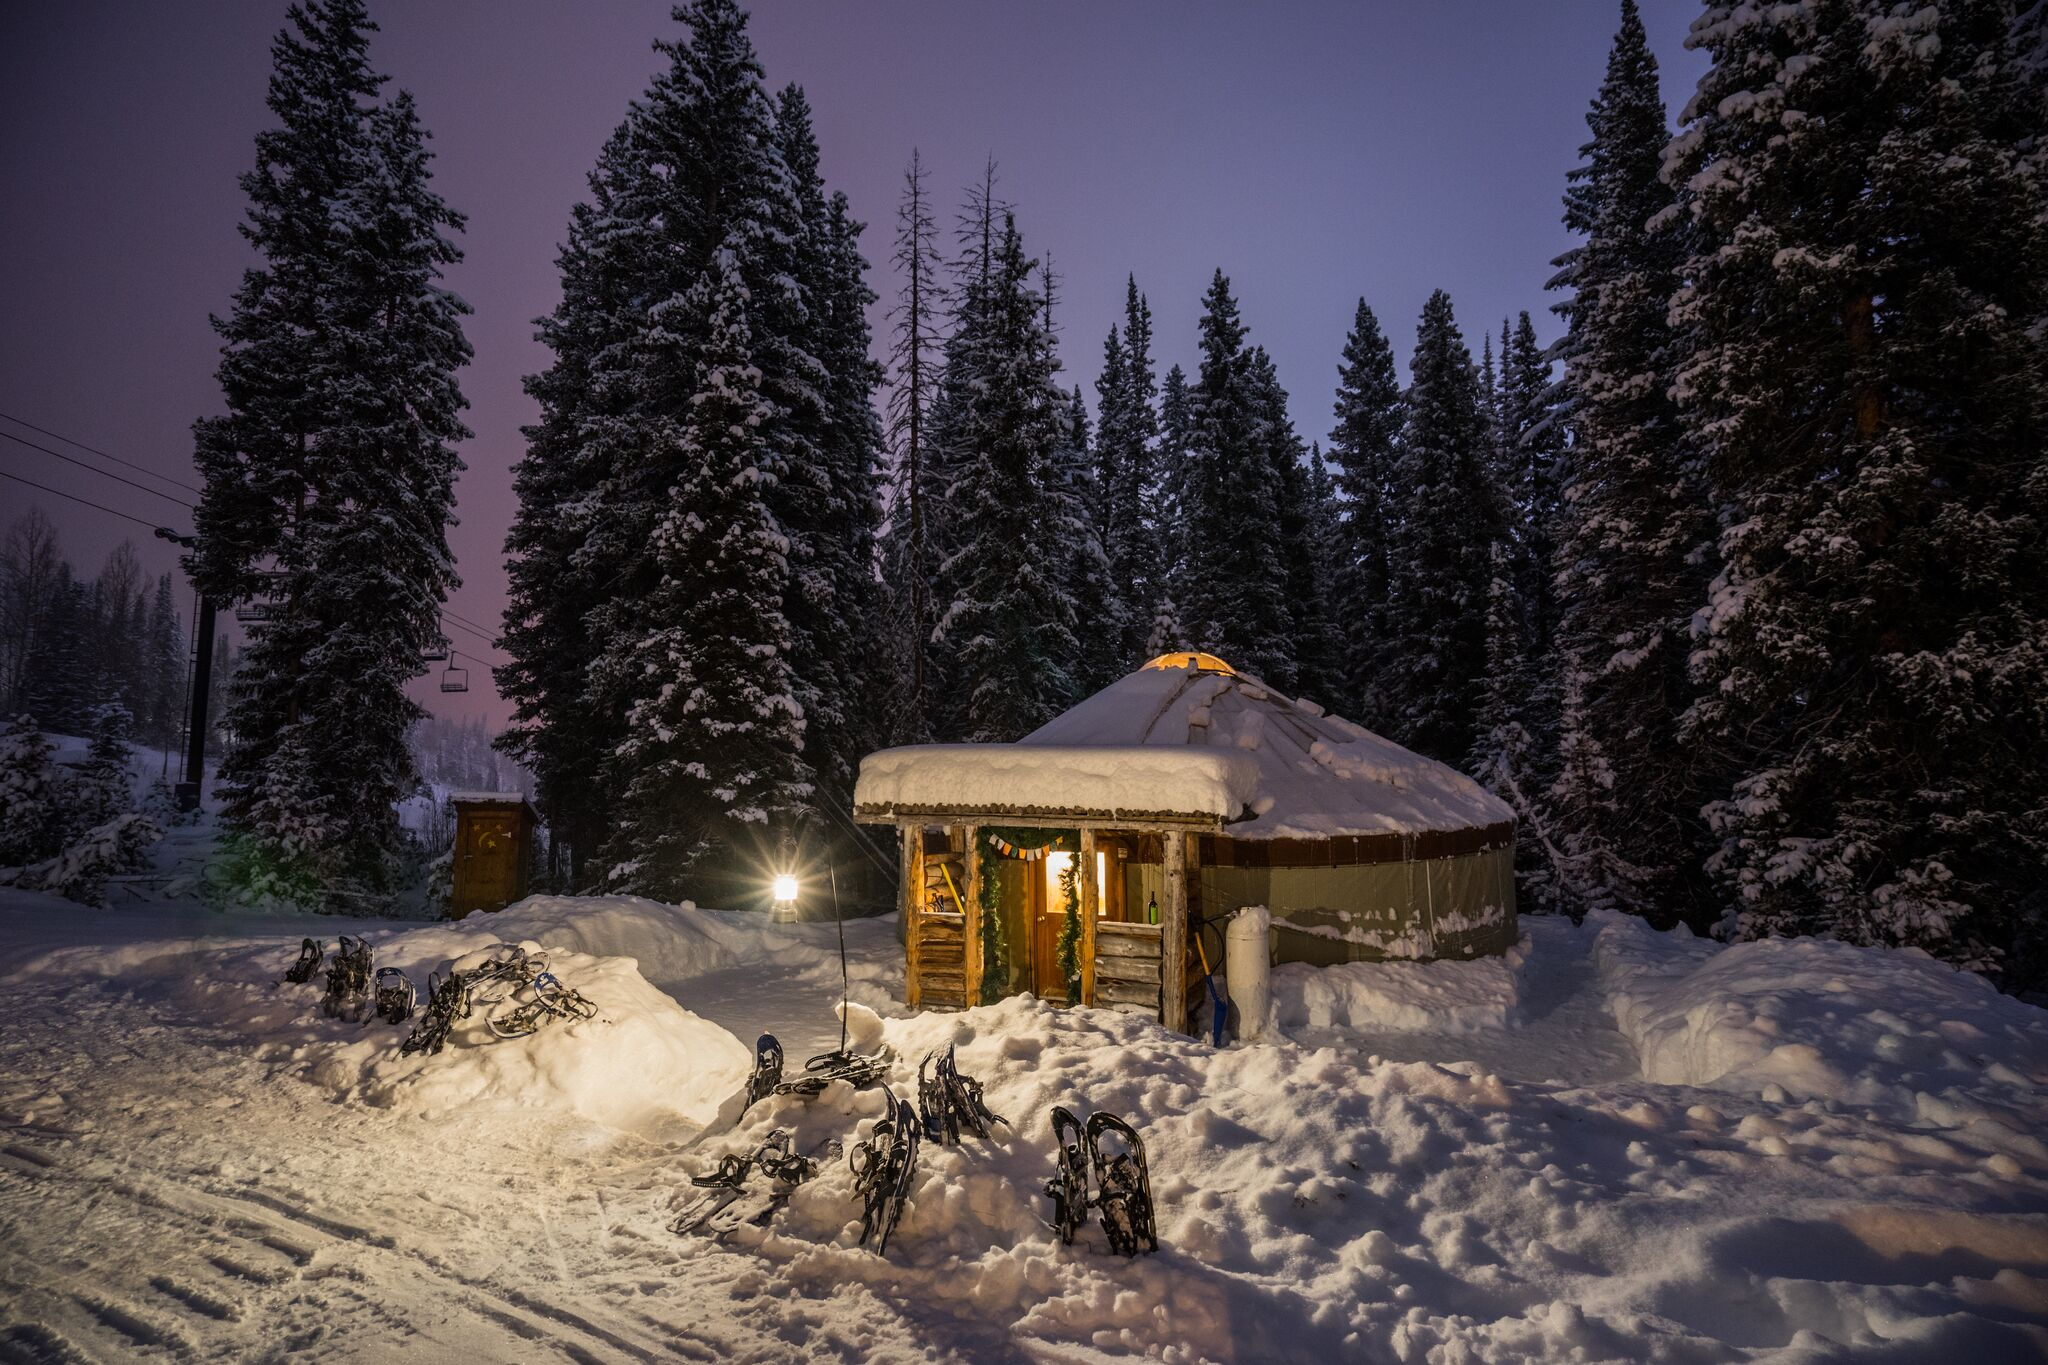 The Yurt At Solitude (Solitude Mountain Resort)